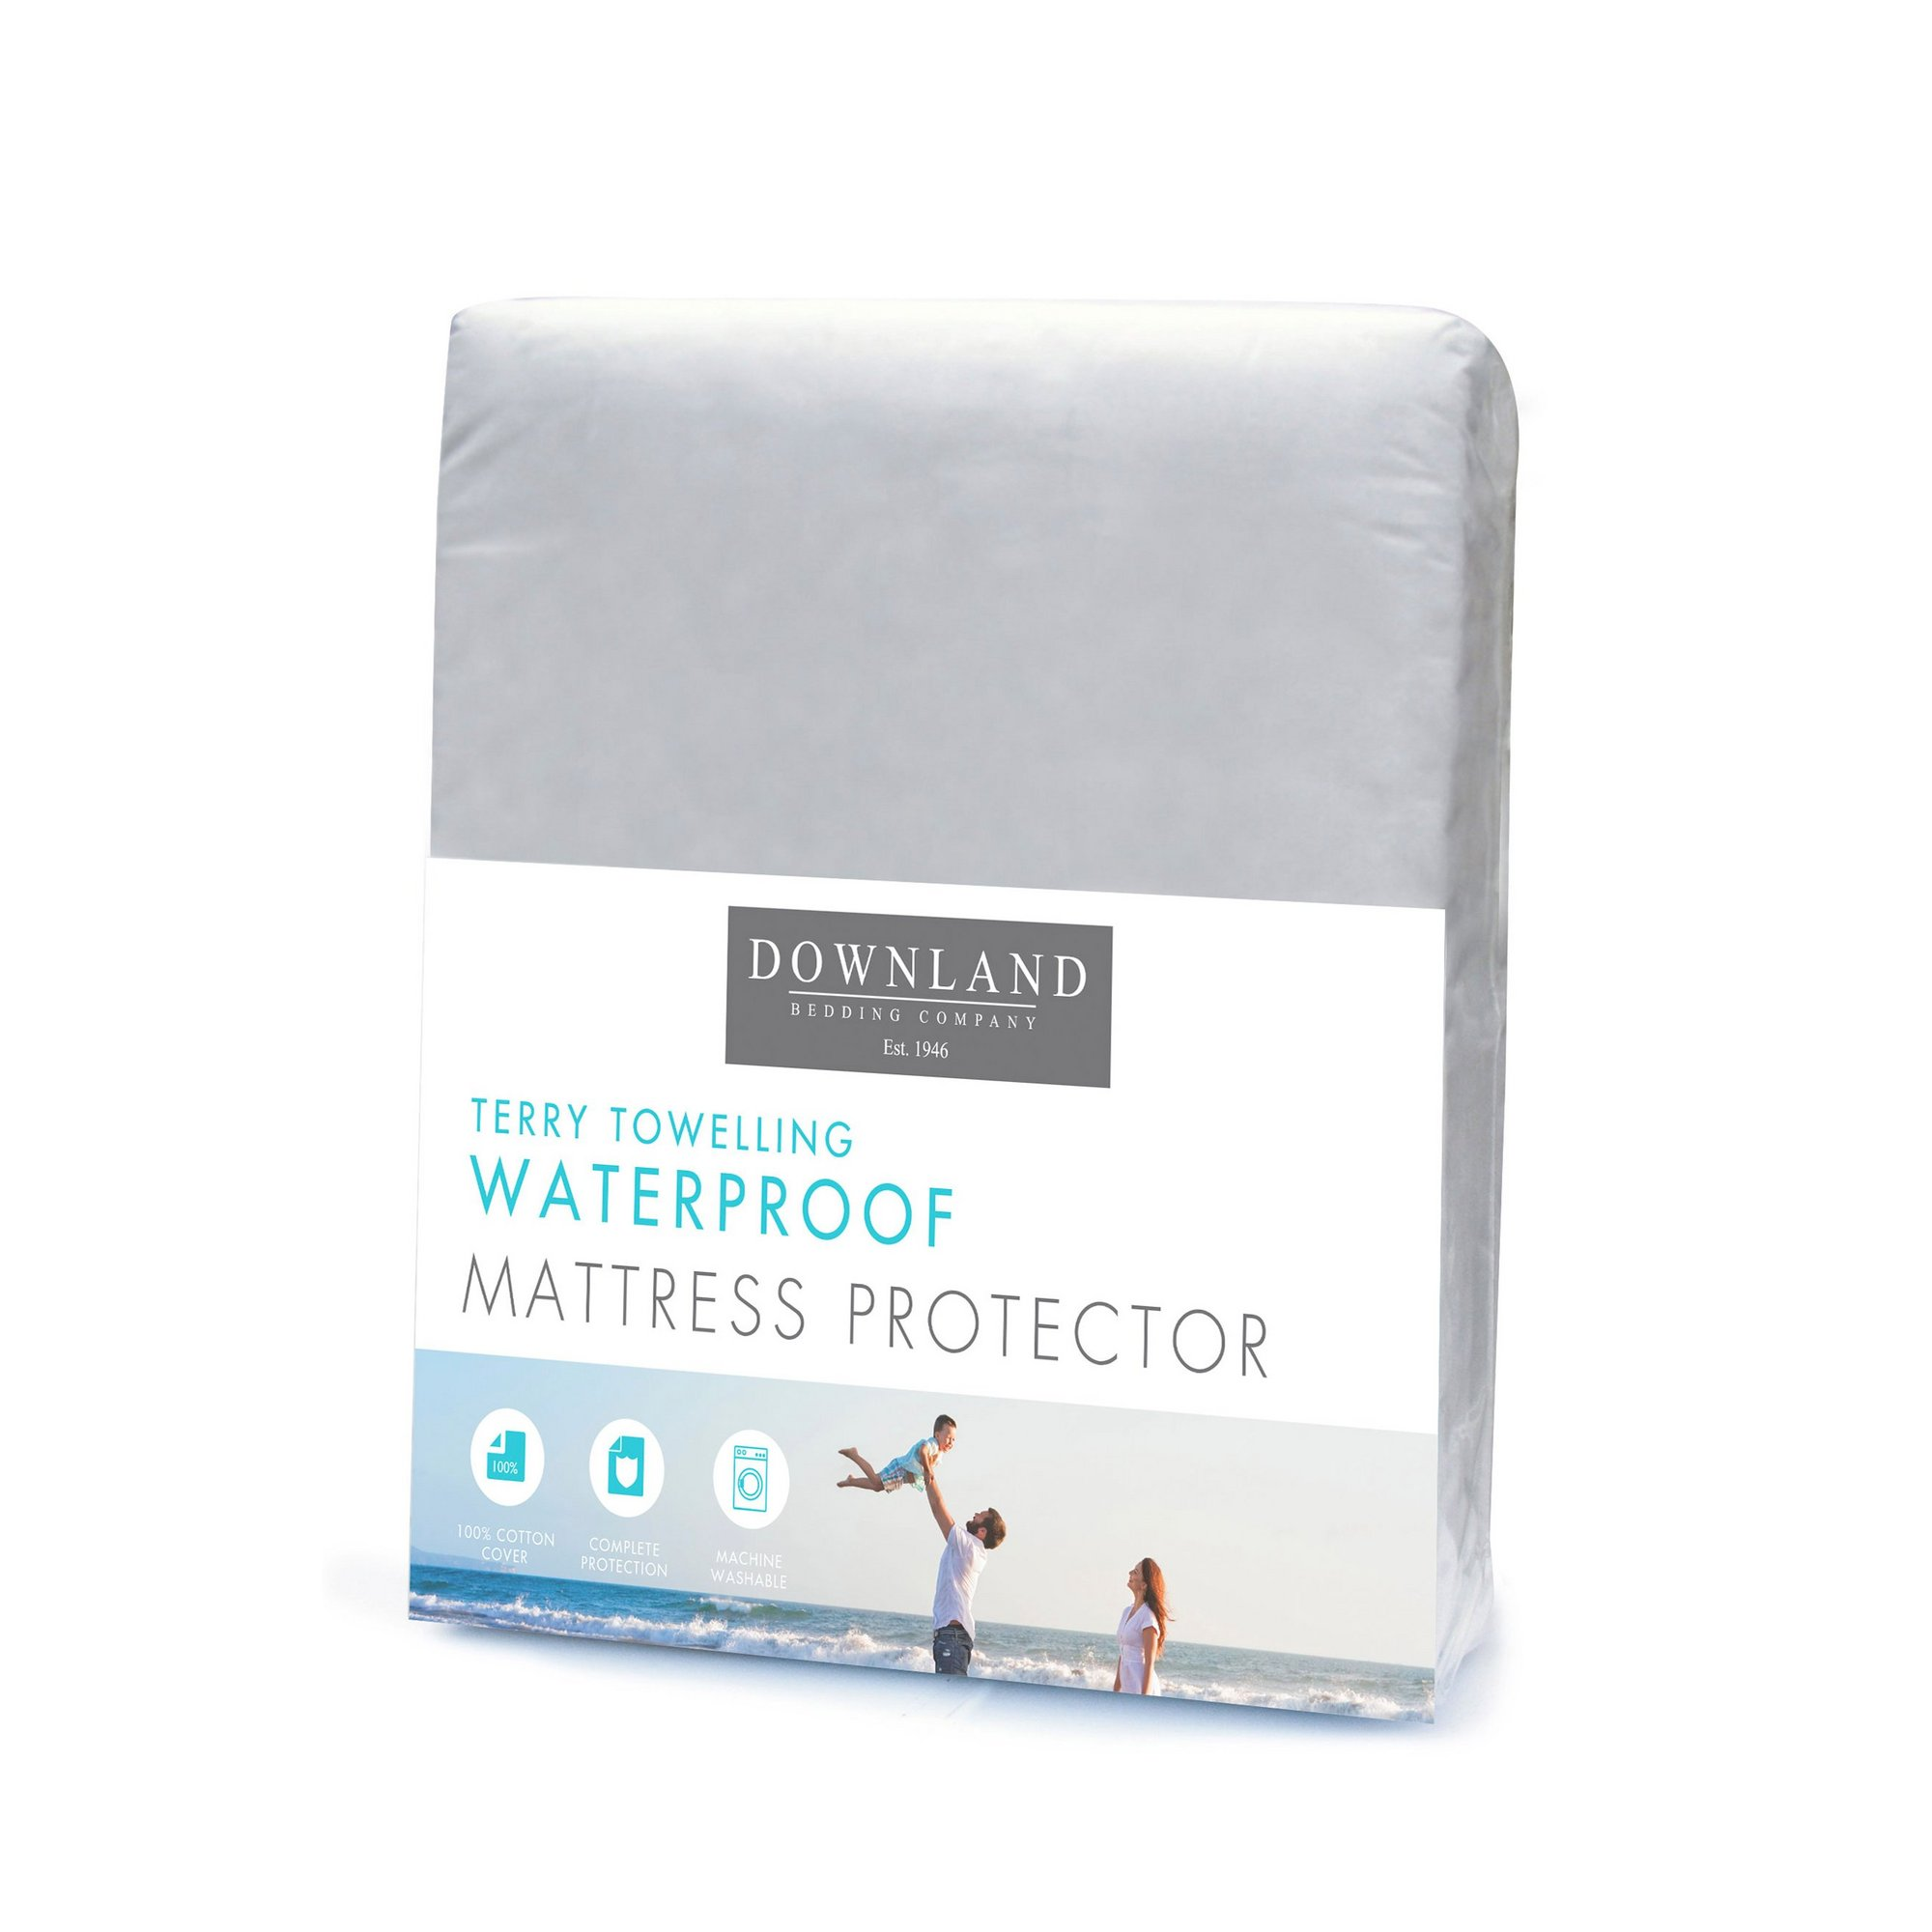 Image of Downland Breathable Waterproof Terry Towelling Mattress Protector